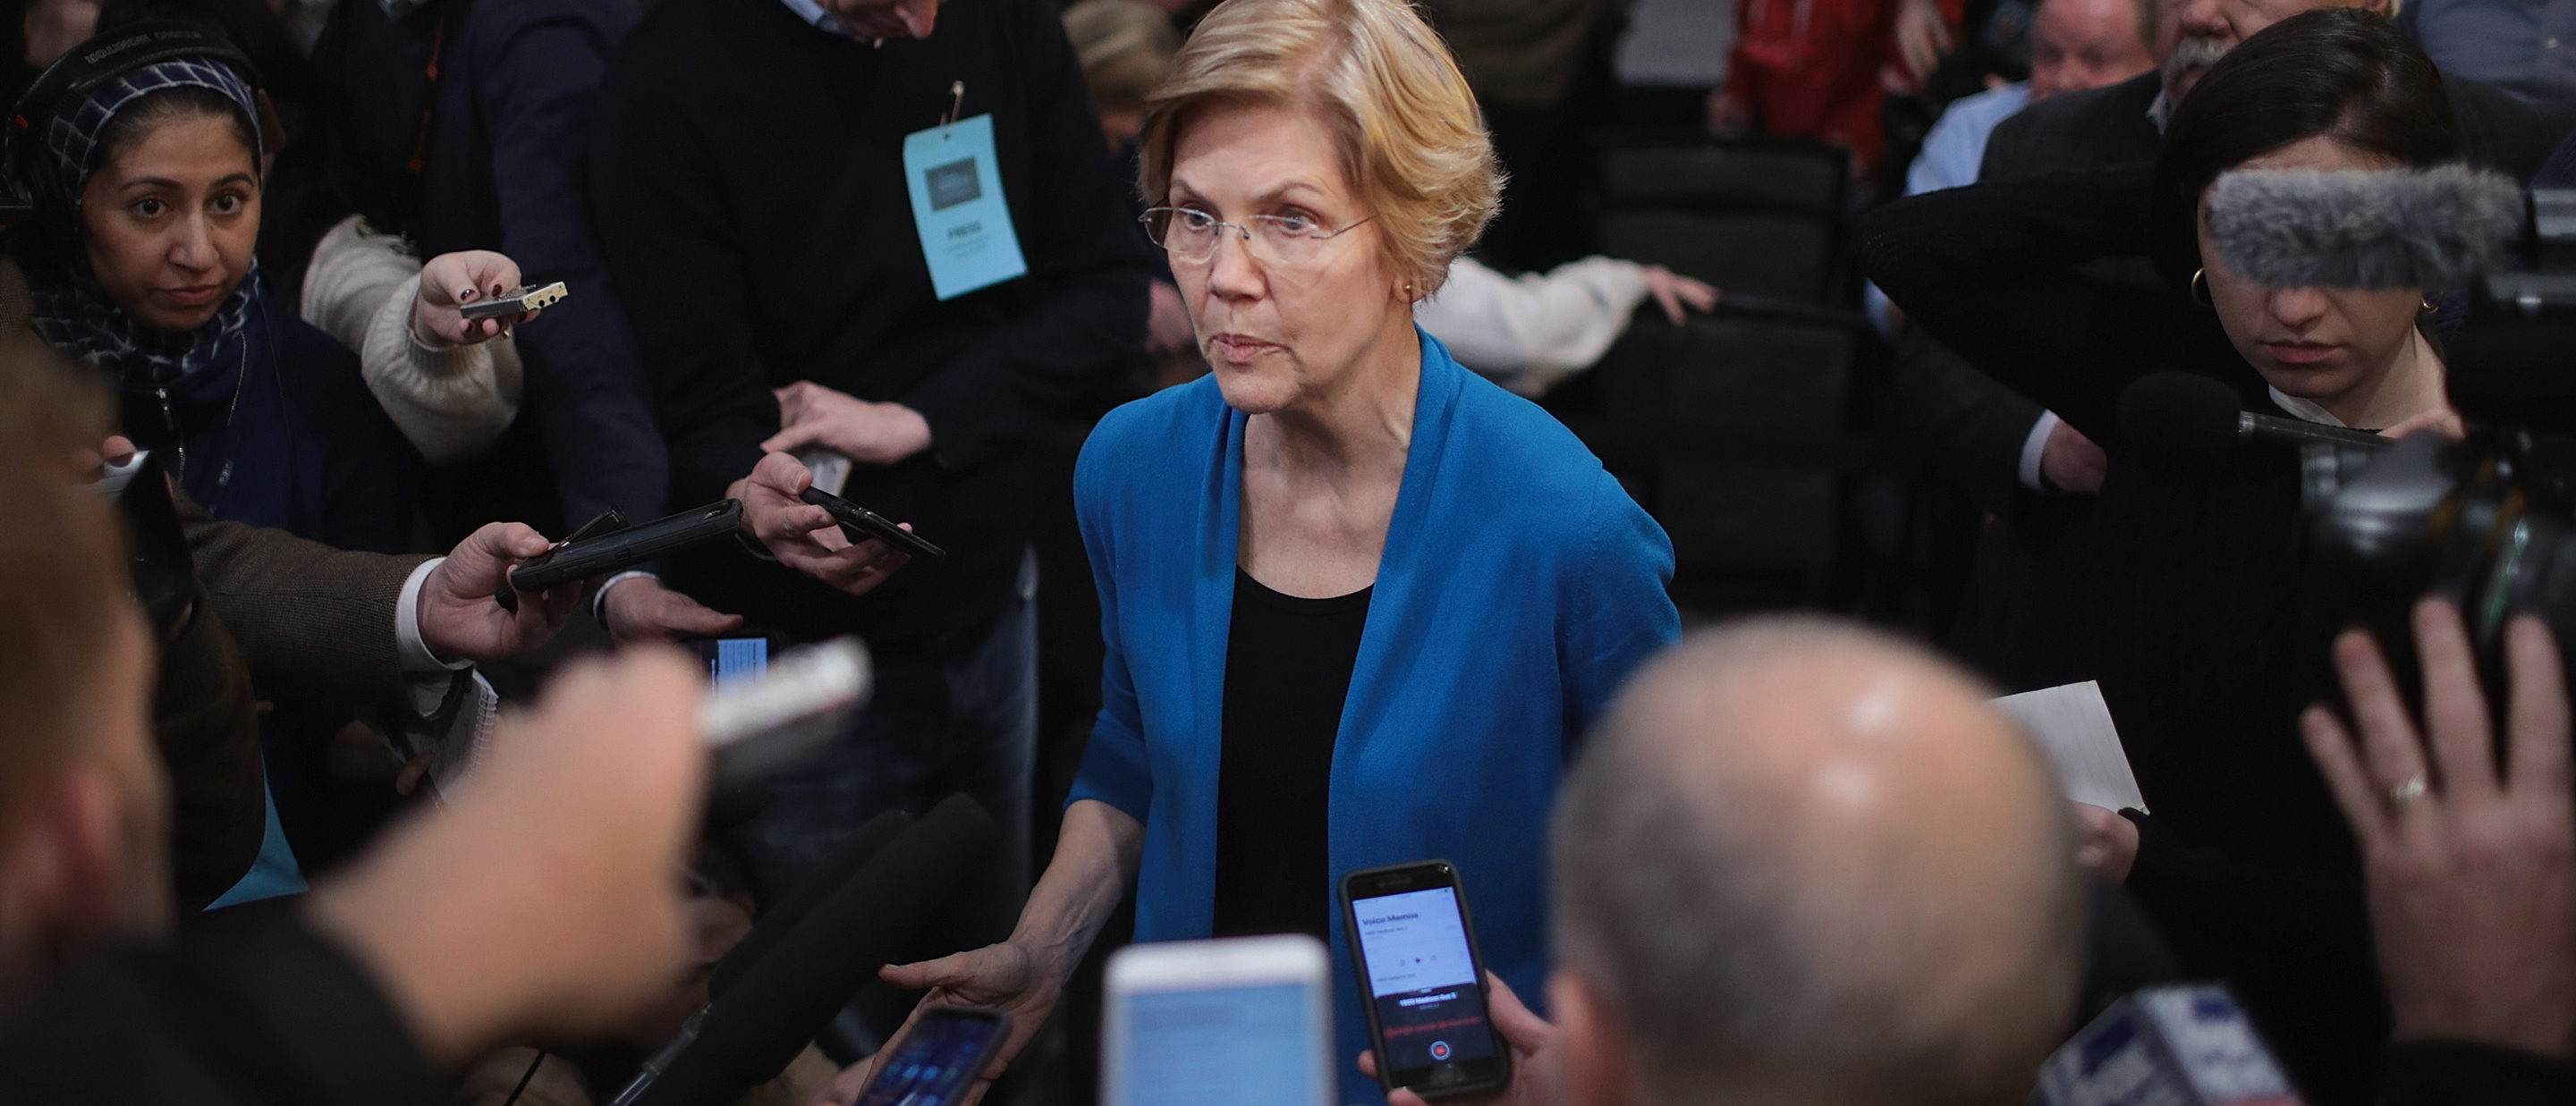 Sen. Elizabeth Warren (D-MA) speaks to reporters during a campaign stop at McCoy's Bar Patio and Grill on January 4, 2019 in Council Bluffs, Iowa. (Photo by Scott Olson/Getty Images)